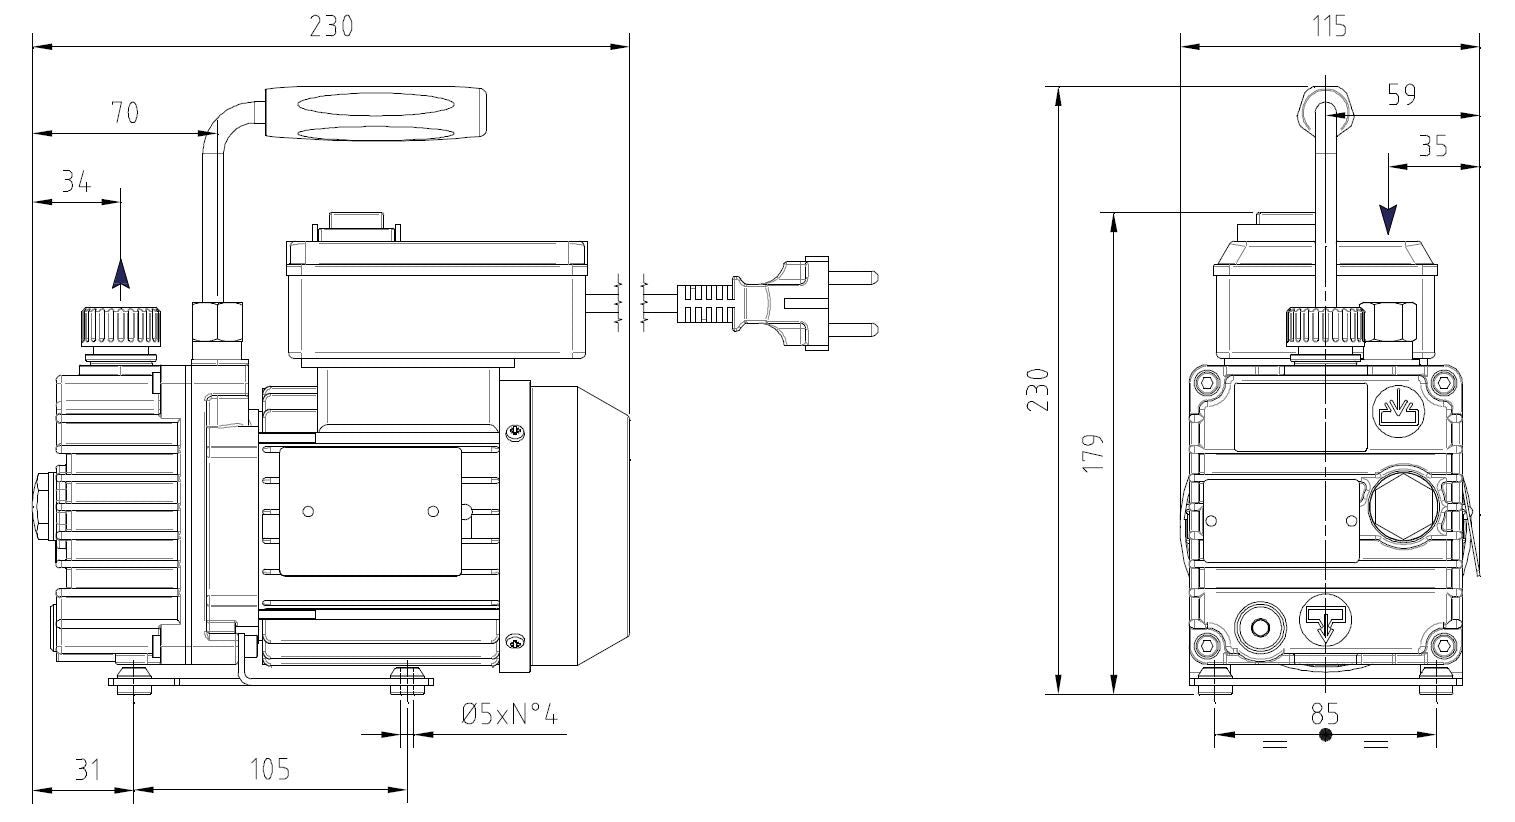 specifications vacuum pump_darwin microfluidics